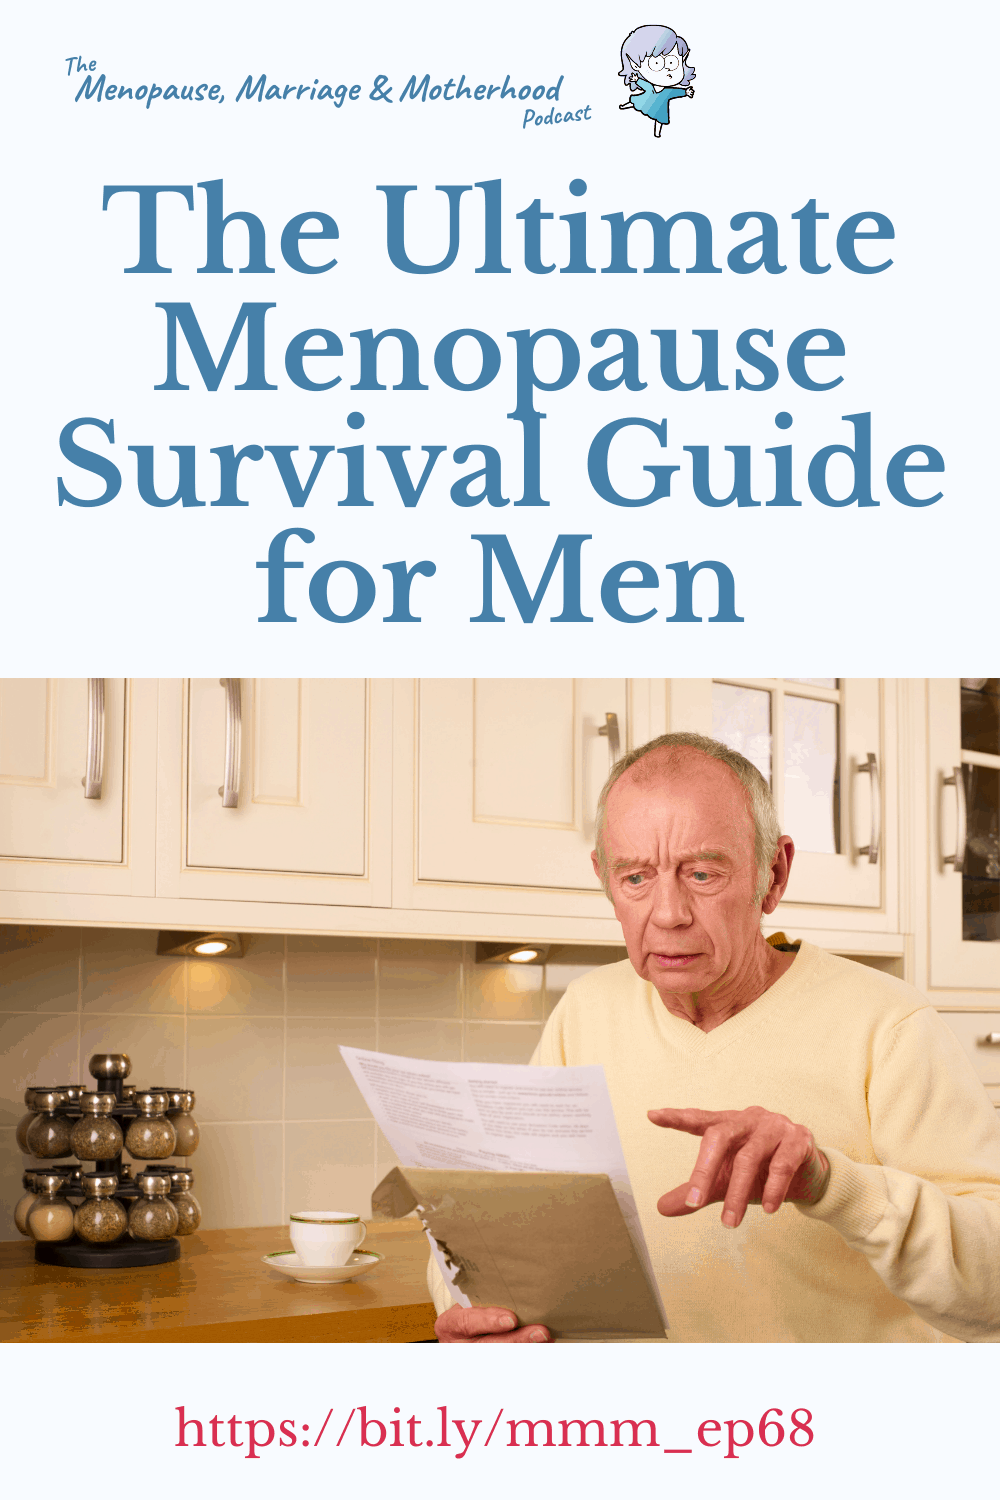 Menopause Partners with Robert Grimes